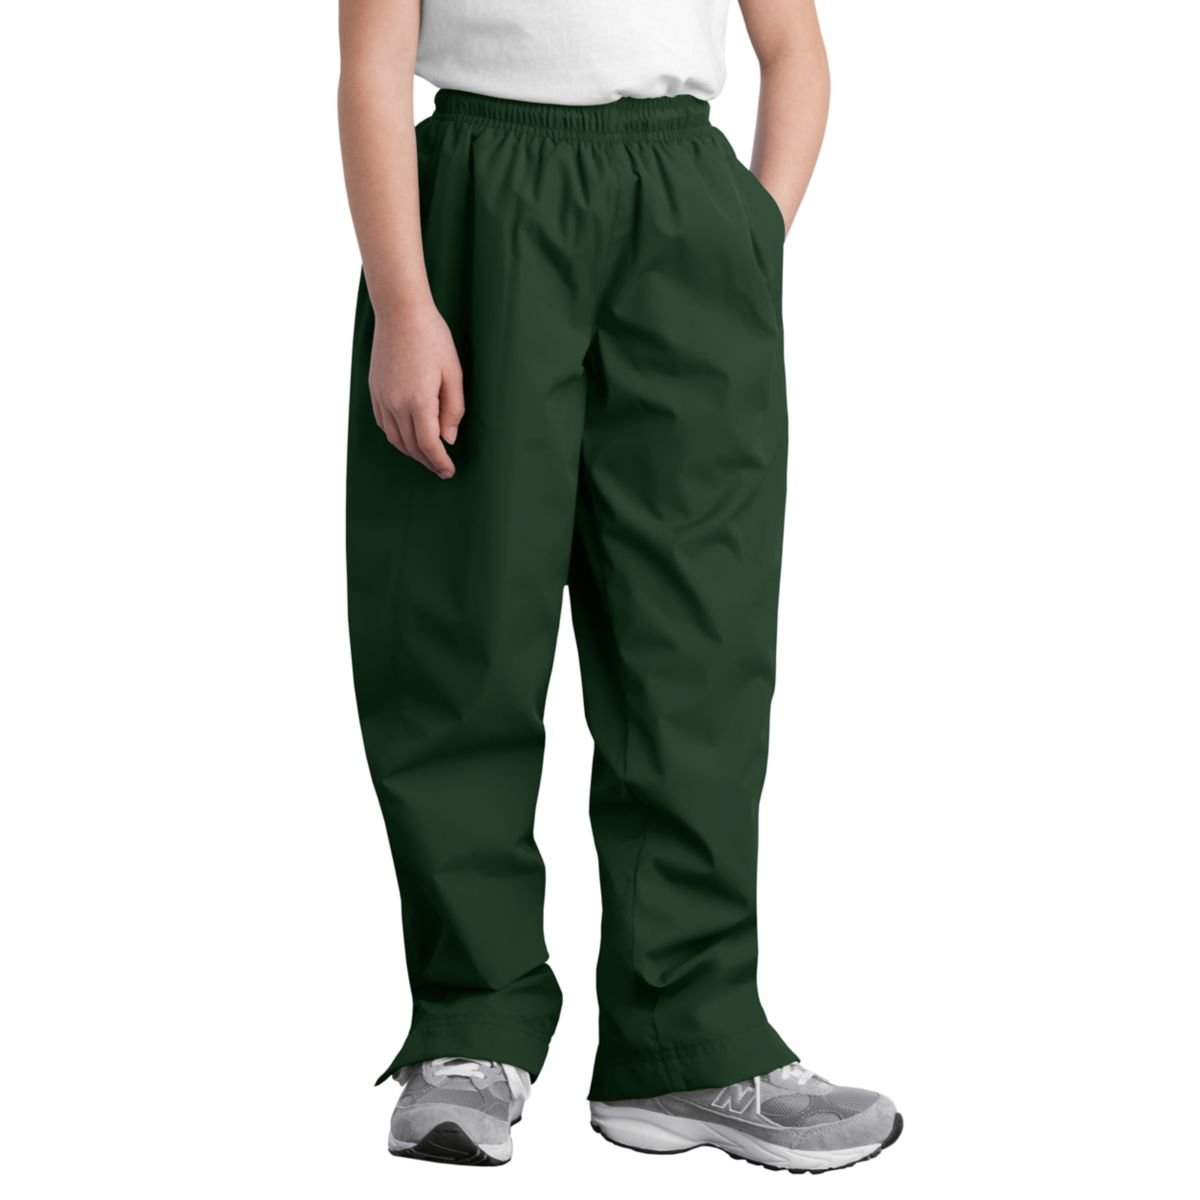 Sport-Tek Youth Wind Pant, Forest Green, S